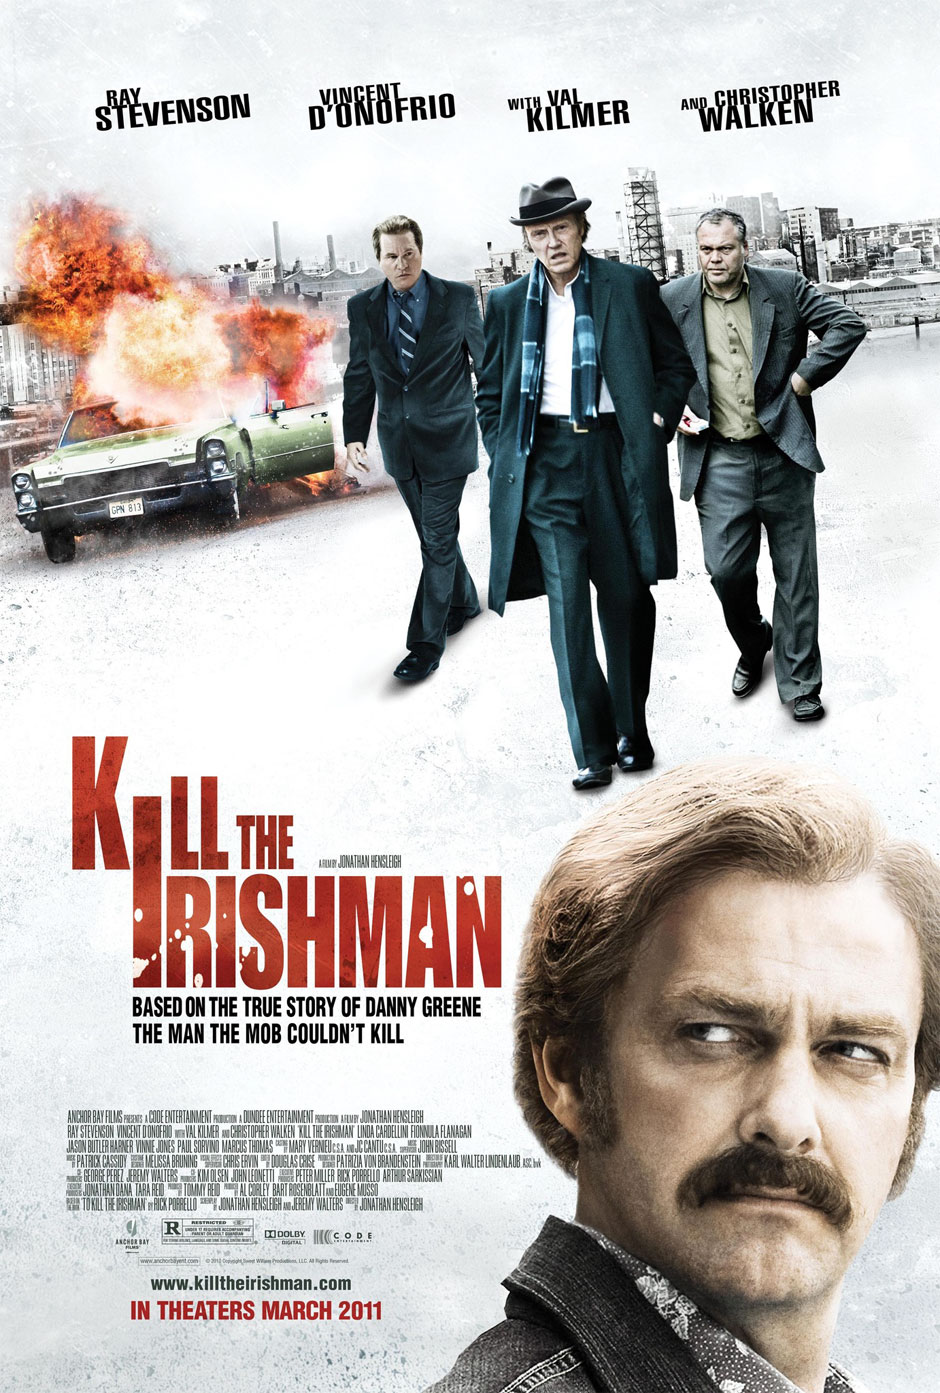 http://3.bp.blogspot.com/-hdHc2kXWdWM/T4uKrhpD1fI/AAAAAAAAHnM/Y2bvPjztTac/s1600/kill-the-irishman-movie-poster-best-movies-ever-val-kilmer.jpg